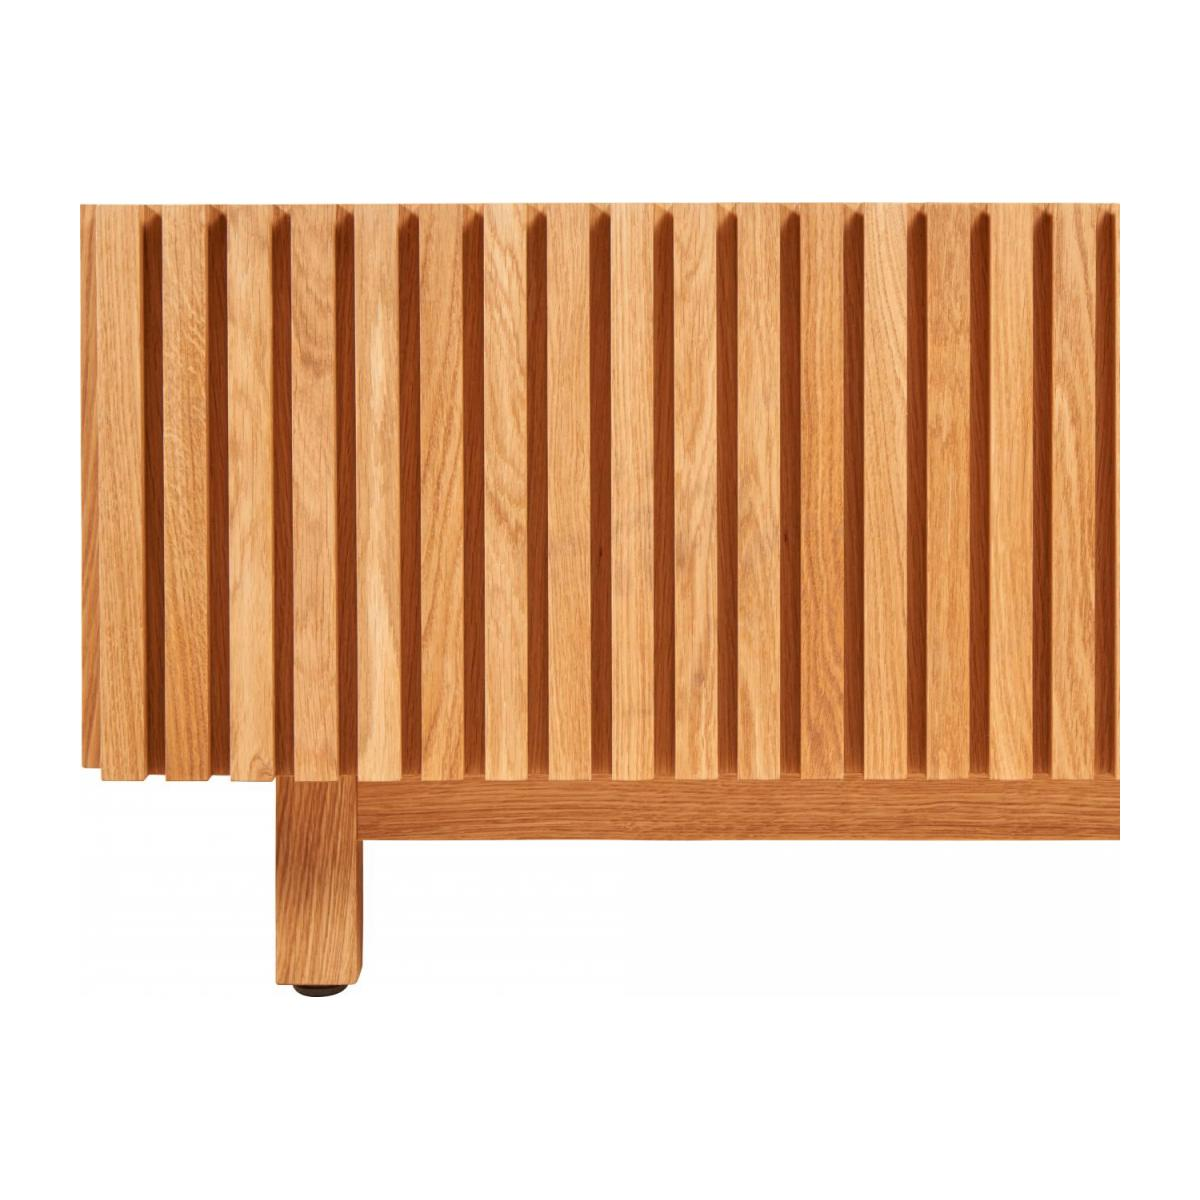 Audio video oak stand n°8